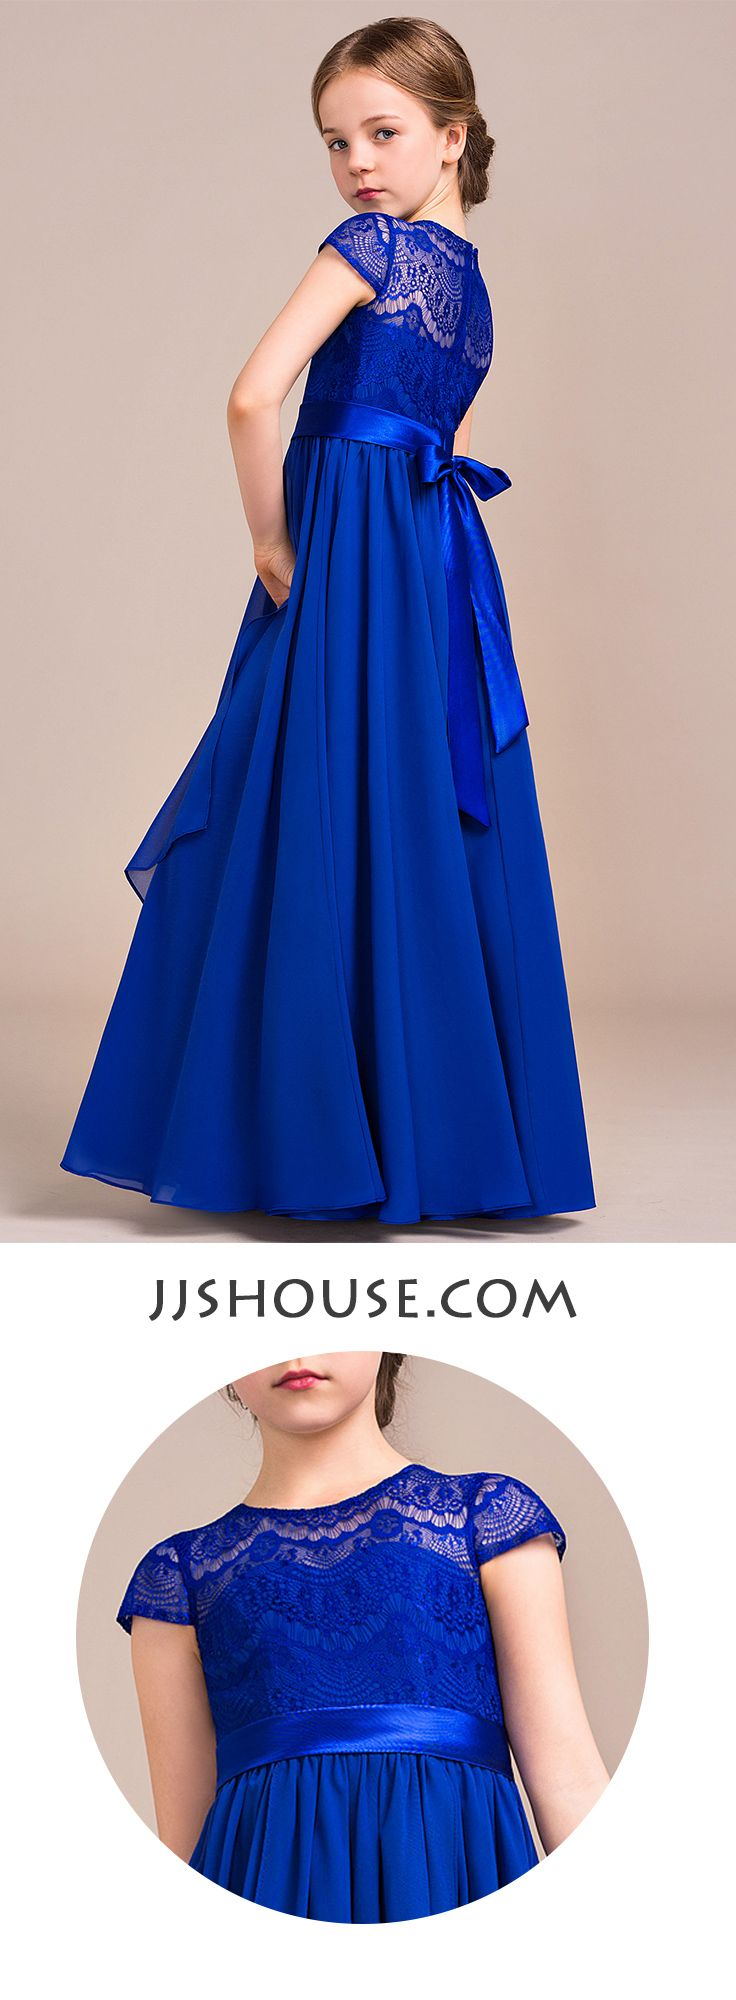 Classy little gown for your junior bridesmaid jjshouse junior royal blue jr bridesmaid dresses bridesmaids are among the most significant people in your wedding ombrellifo Image collections